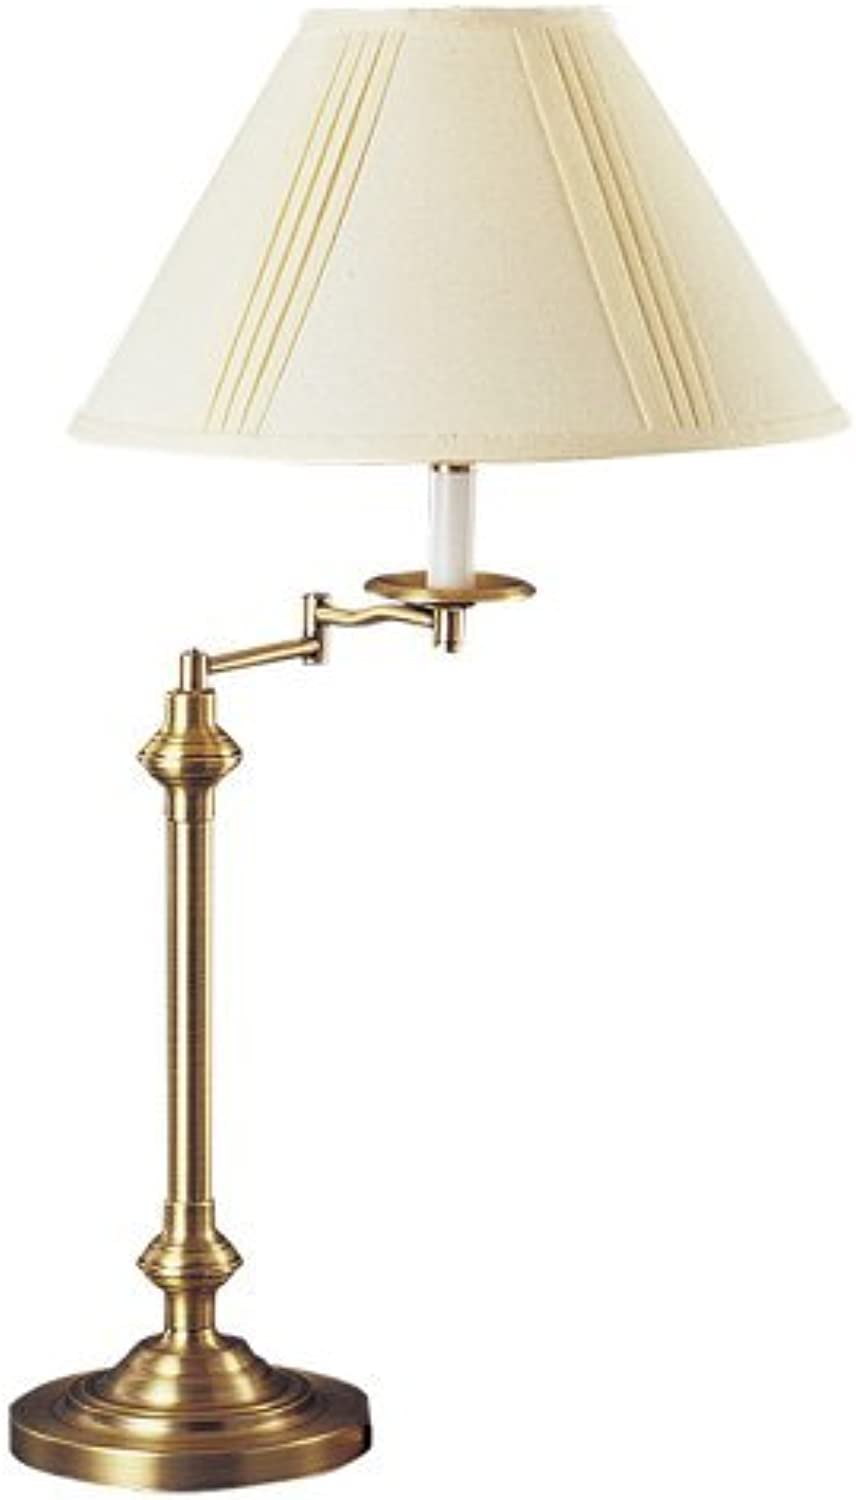 Cal Lighting BO342AB Swing Arm Table Lamp, 150watt, Antique Bronze by Cal